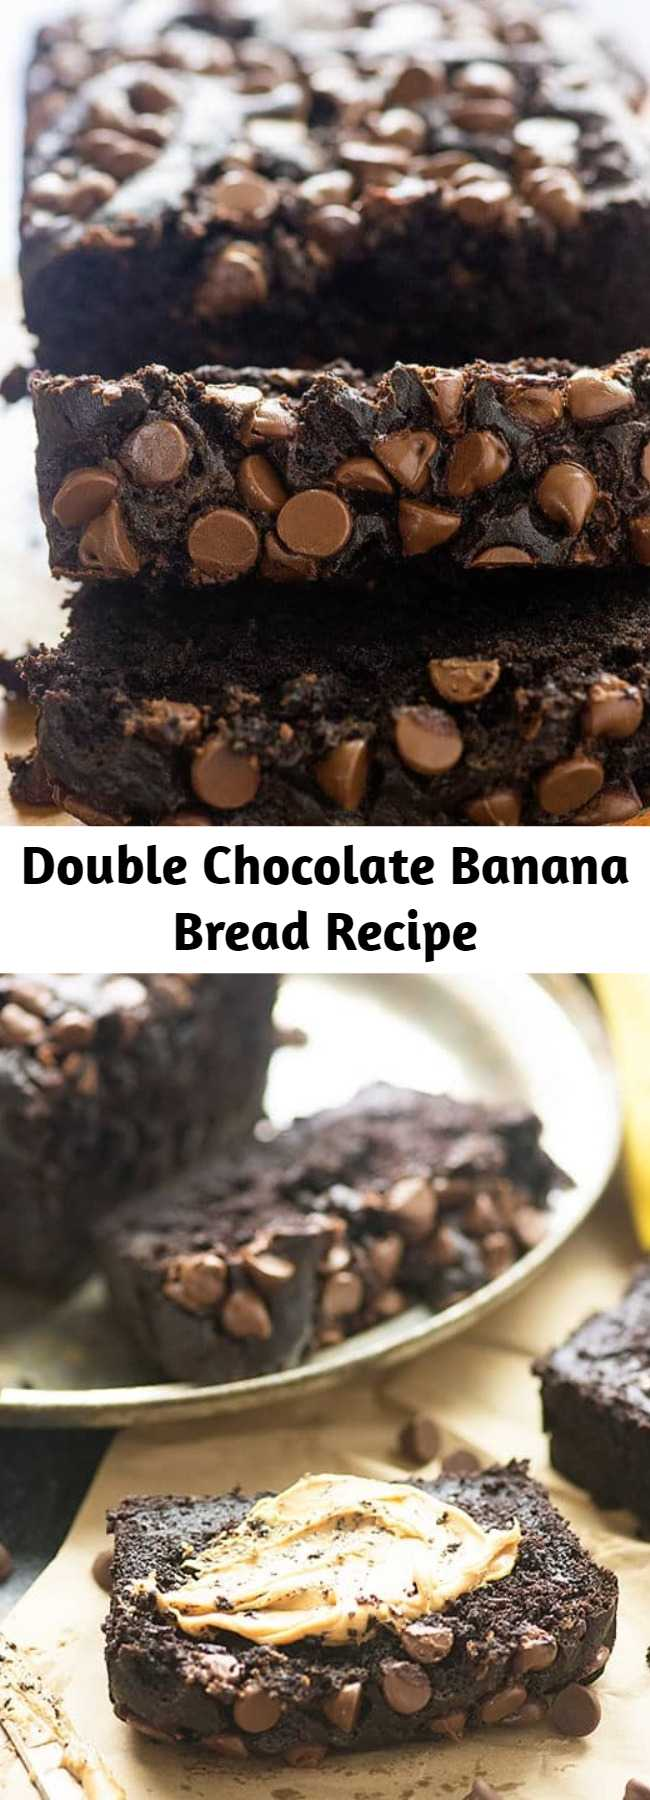 Double Chocolate Banana Bread Recipe - This chocolate banana bread recipe is seriously packing the chocolate flavor! It's super moist and those chocolate chips all over the top just make it fun to eat! #banana #chocolate #recipe